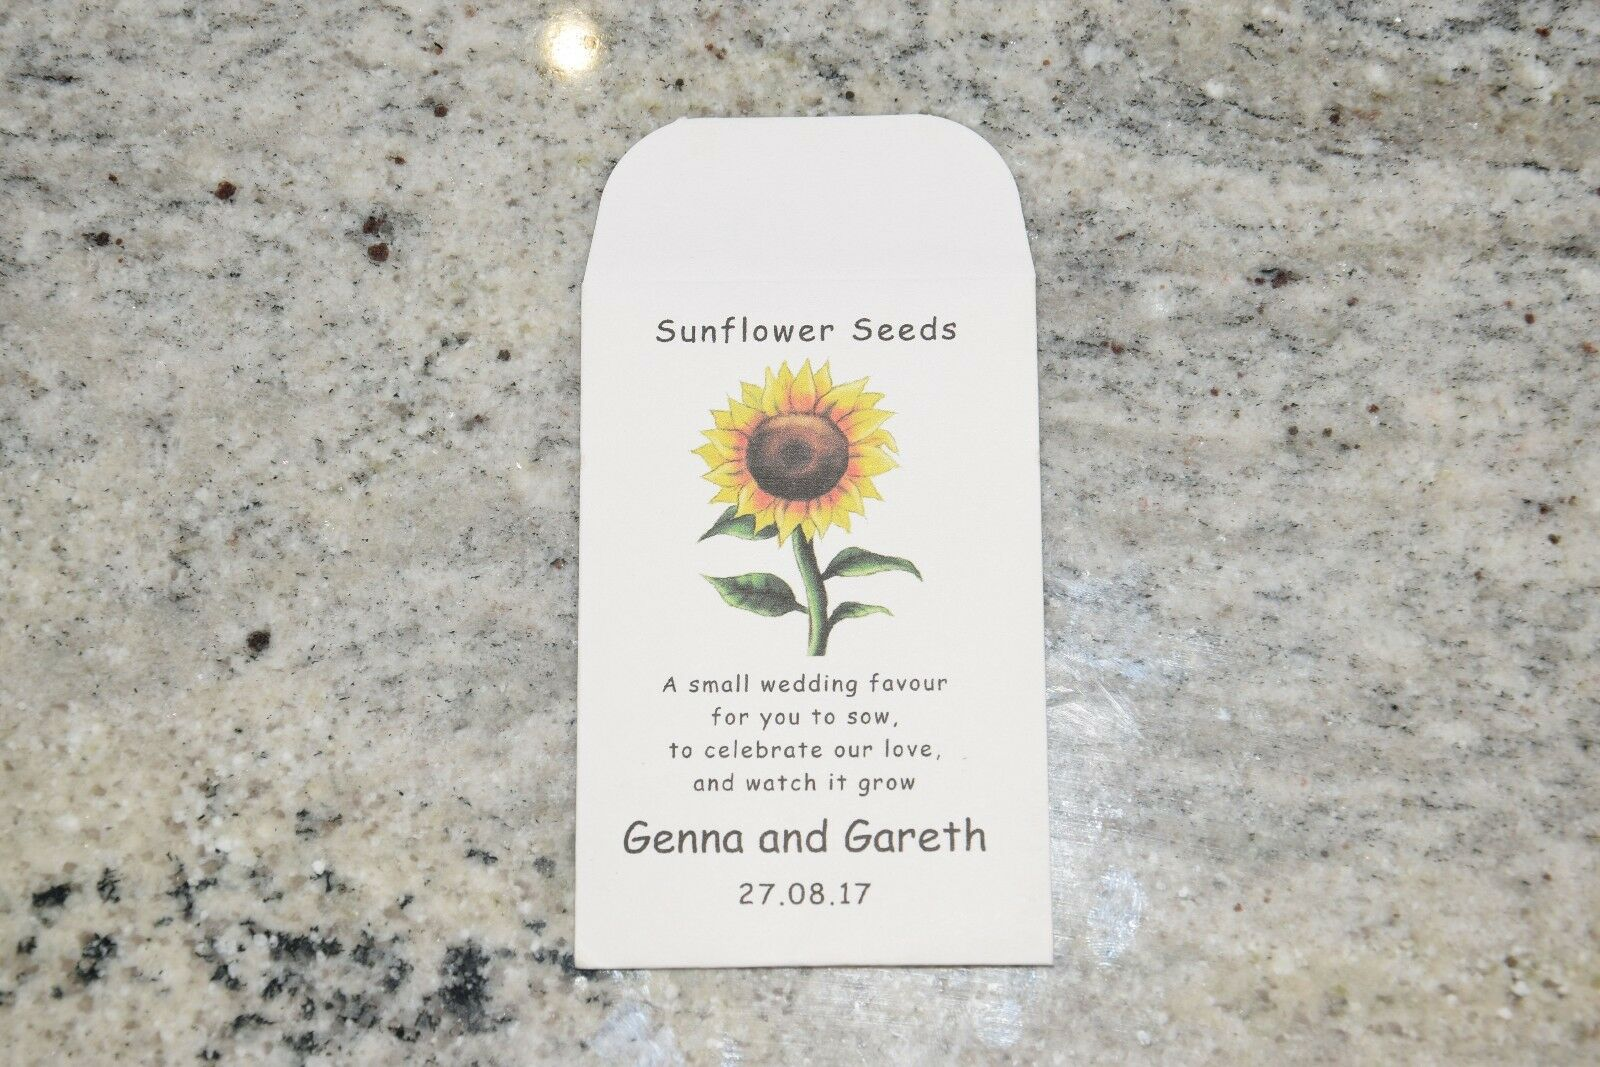 10 X Sunflower Seed Wedding Favours With Poem- Fully Personalised ...